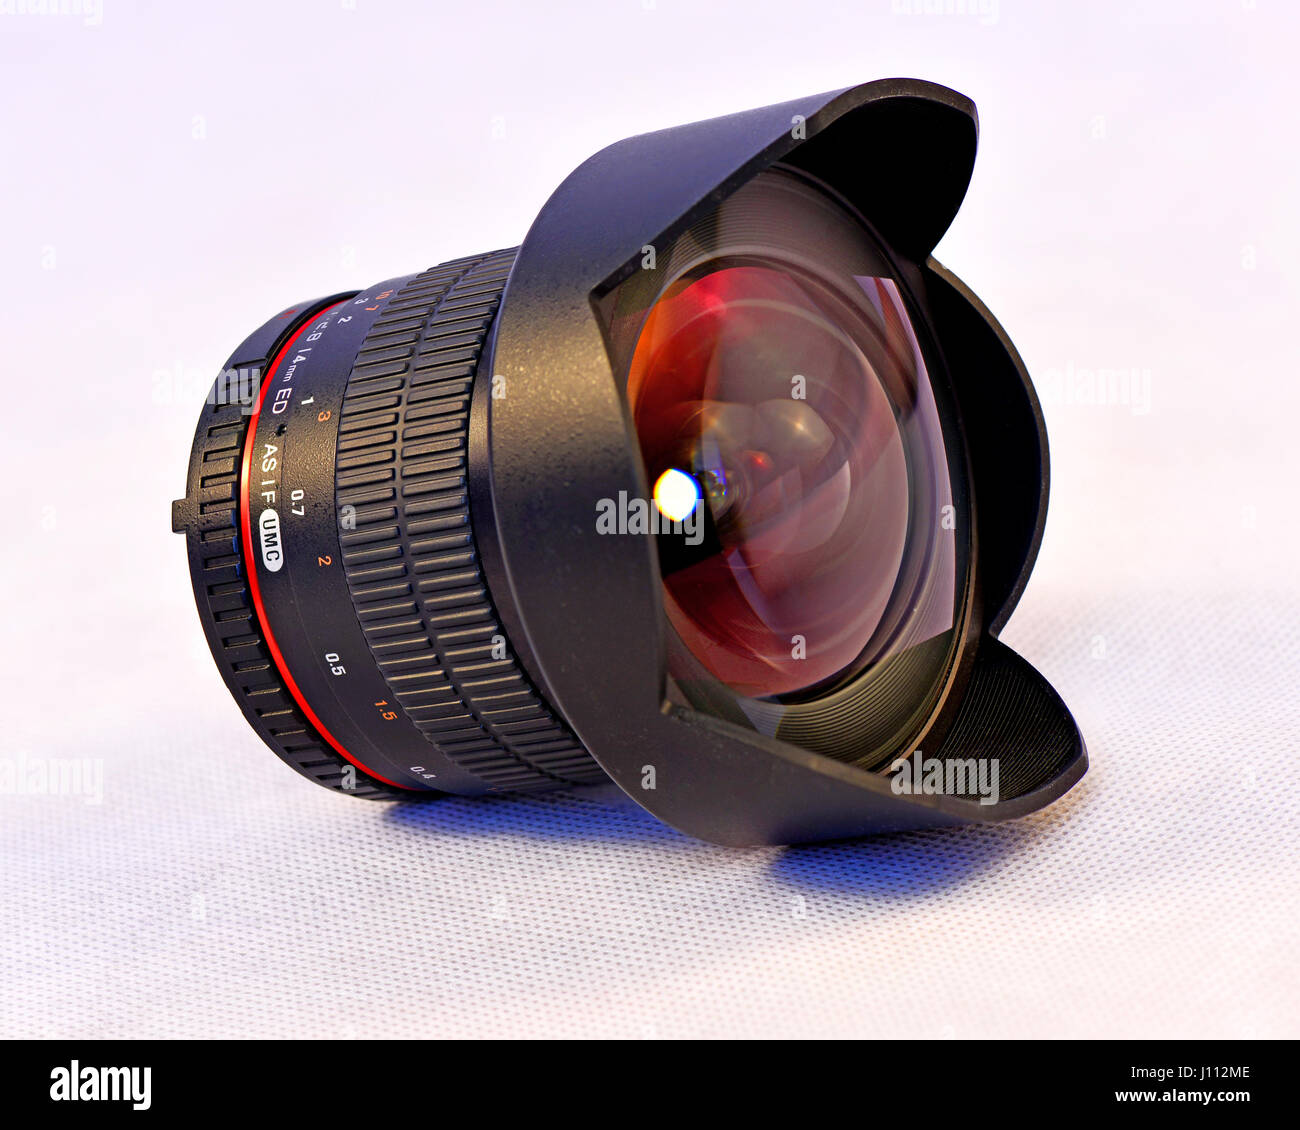 Samyang F28 14mm Super Wide Angle SLR Lens